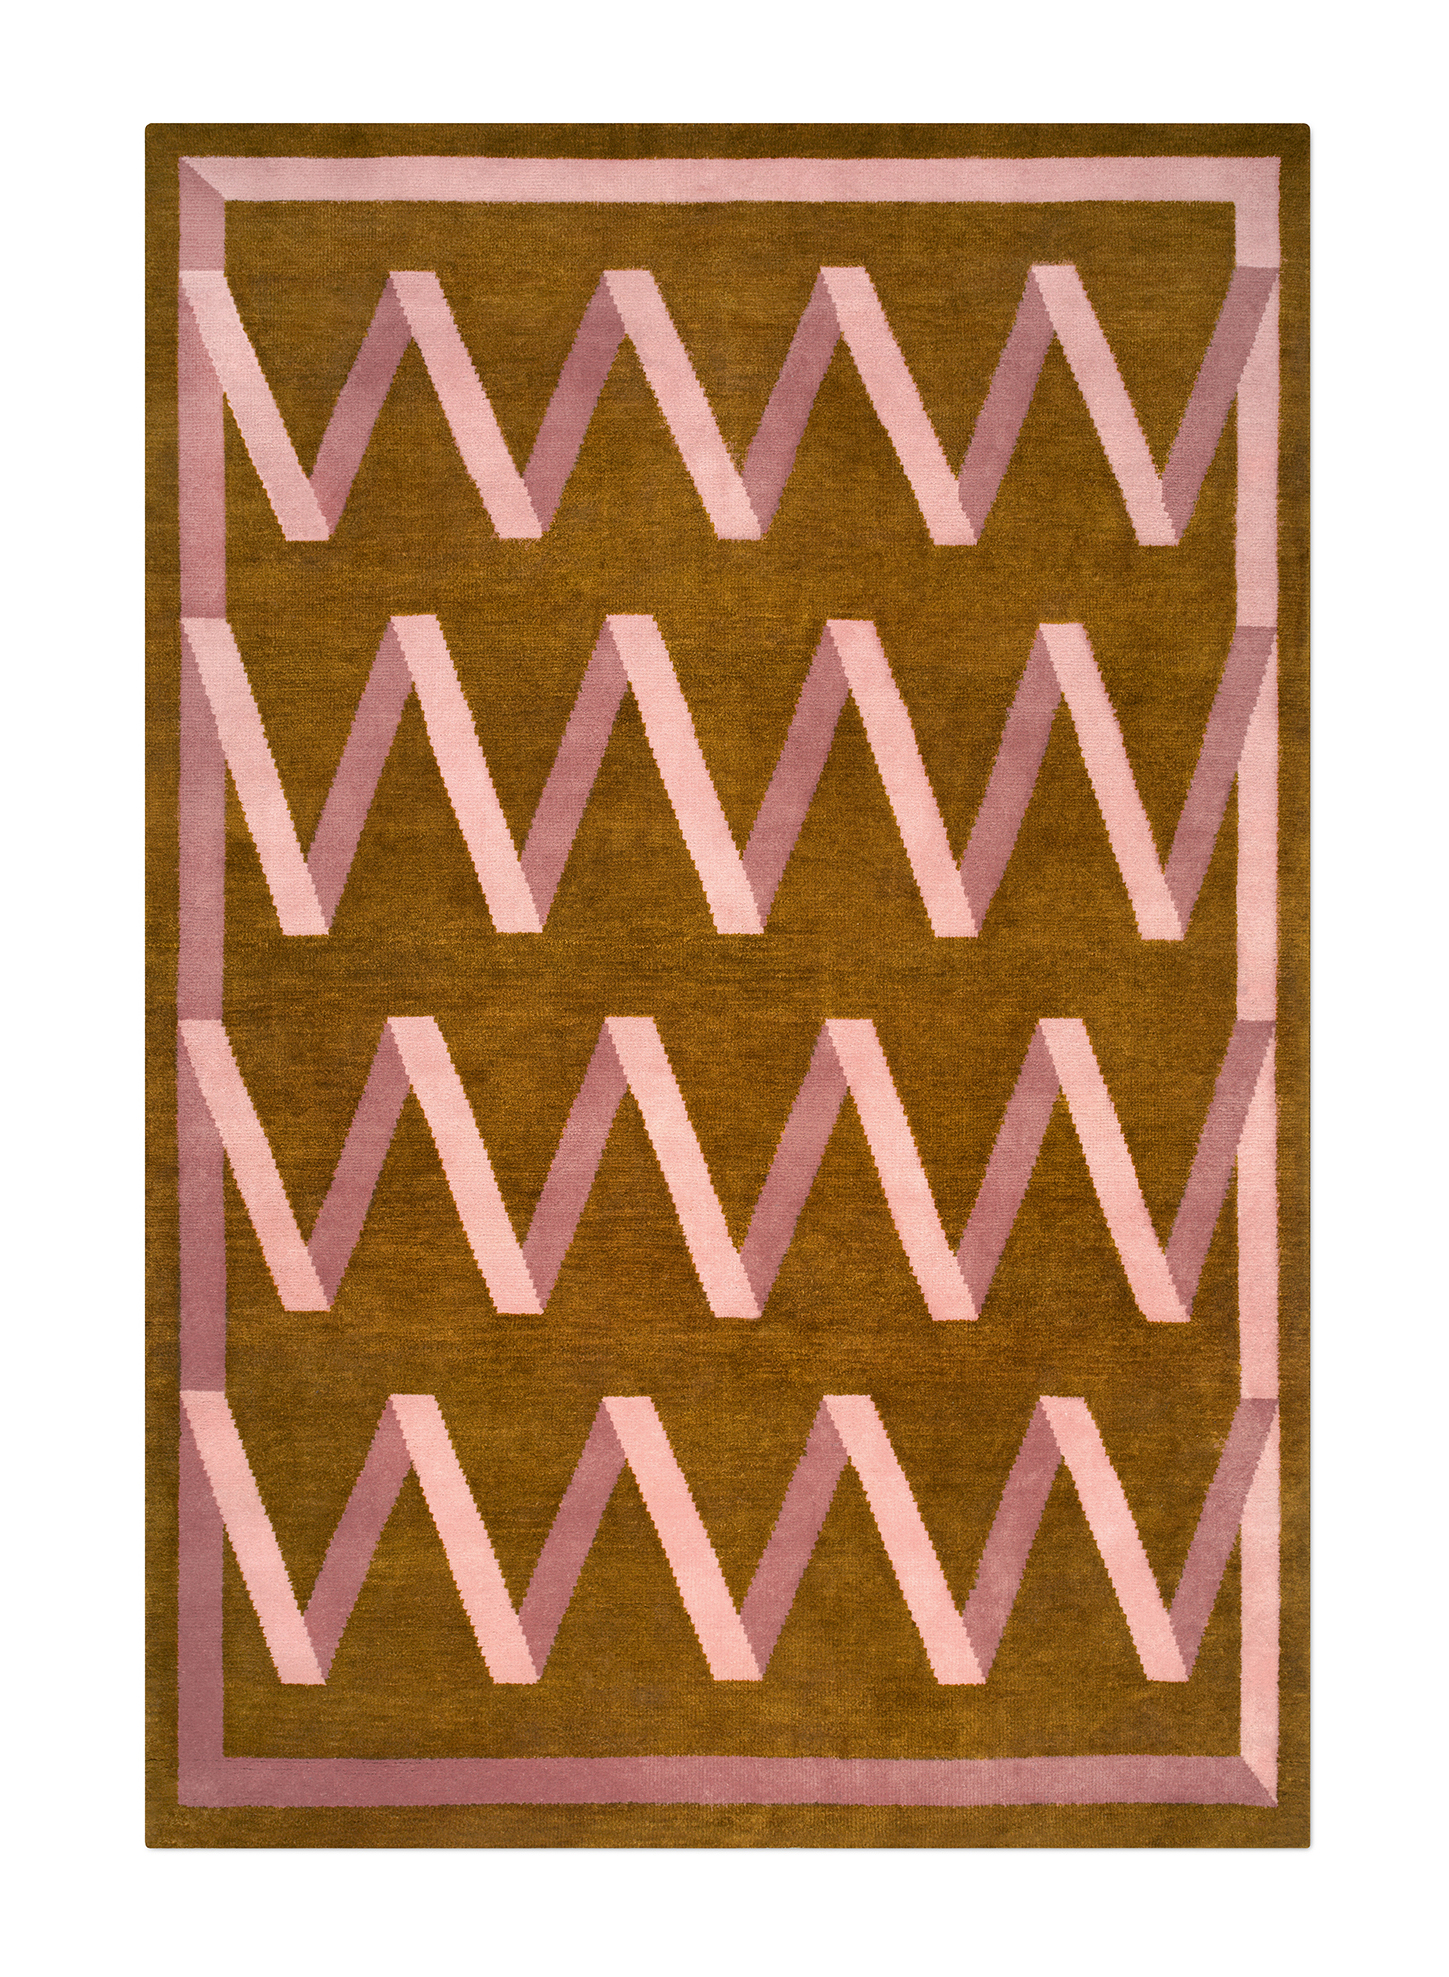 Folding Ribbon hand knotted wool rug.